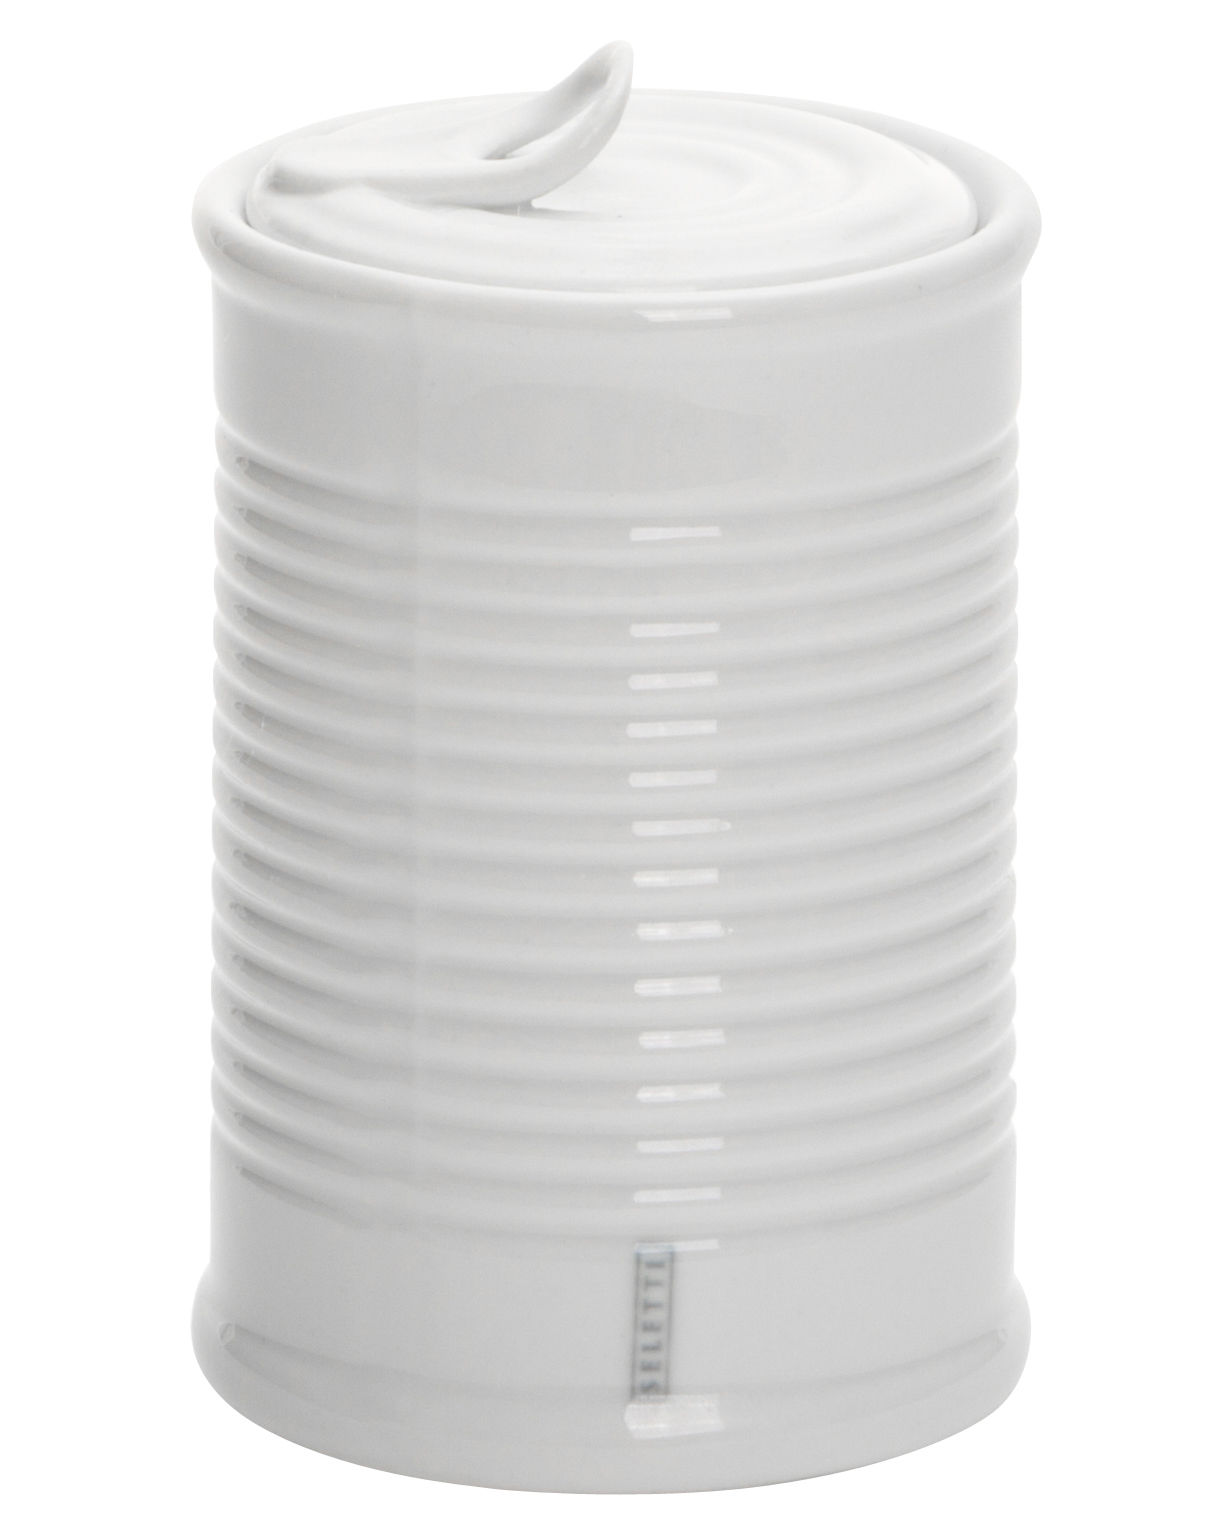 Kitchenware - Kitchen Storage Jars - Estetico Quotidiano Box by Seletti - White - China